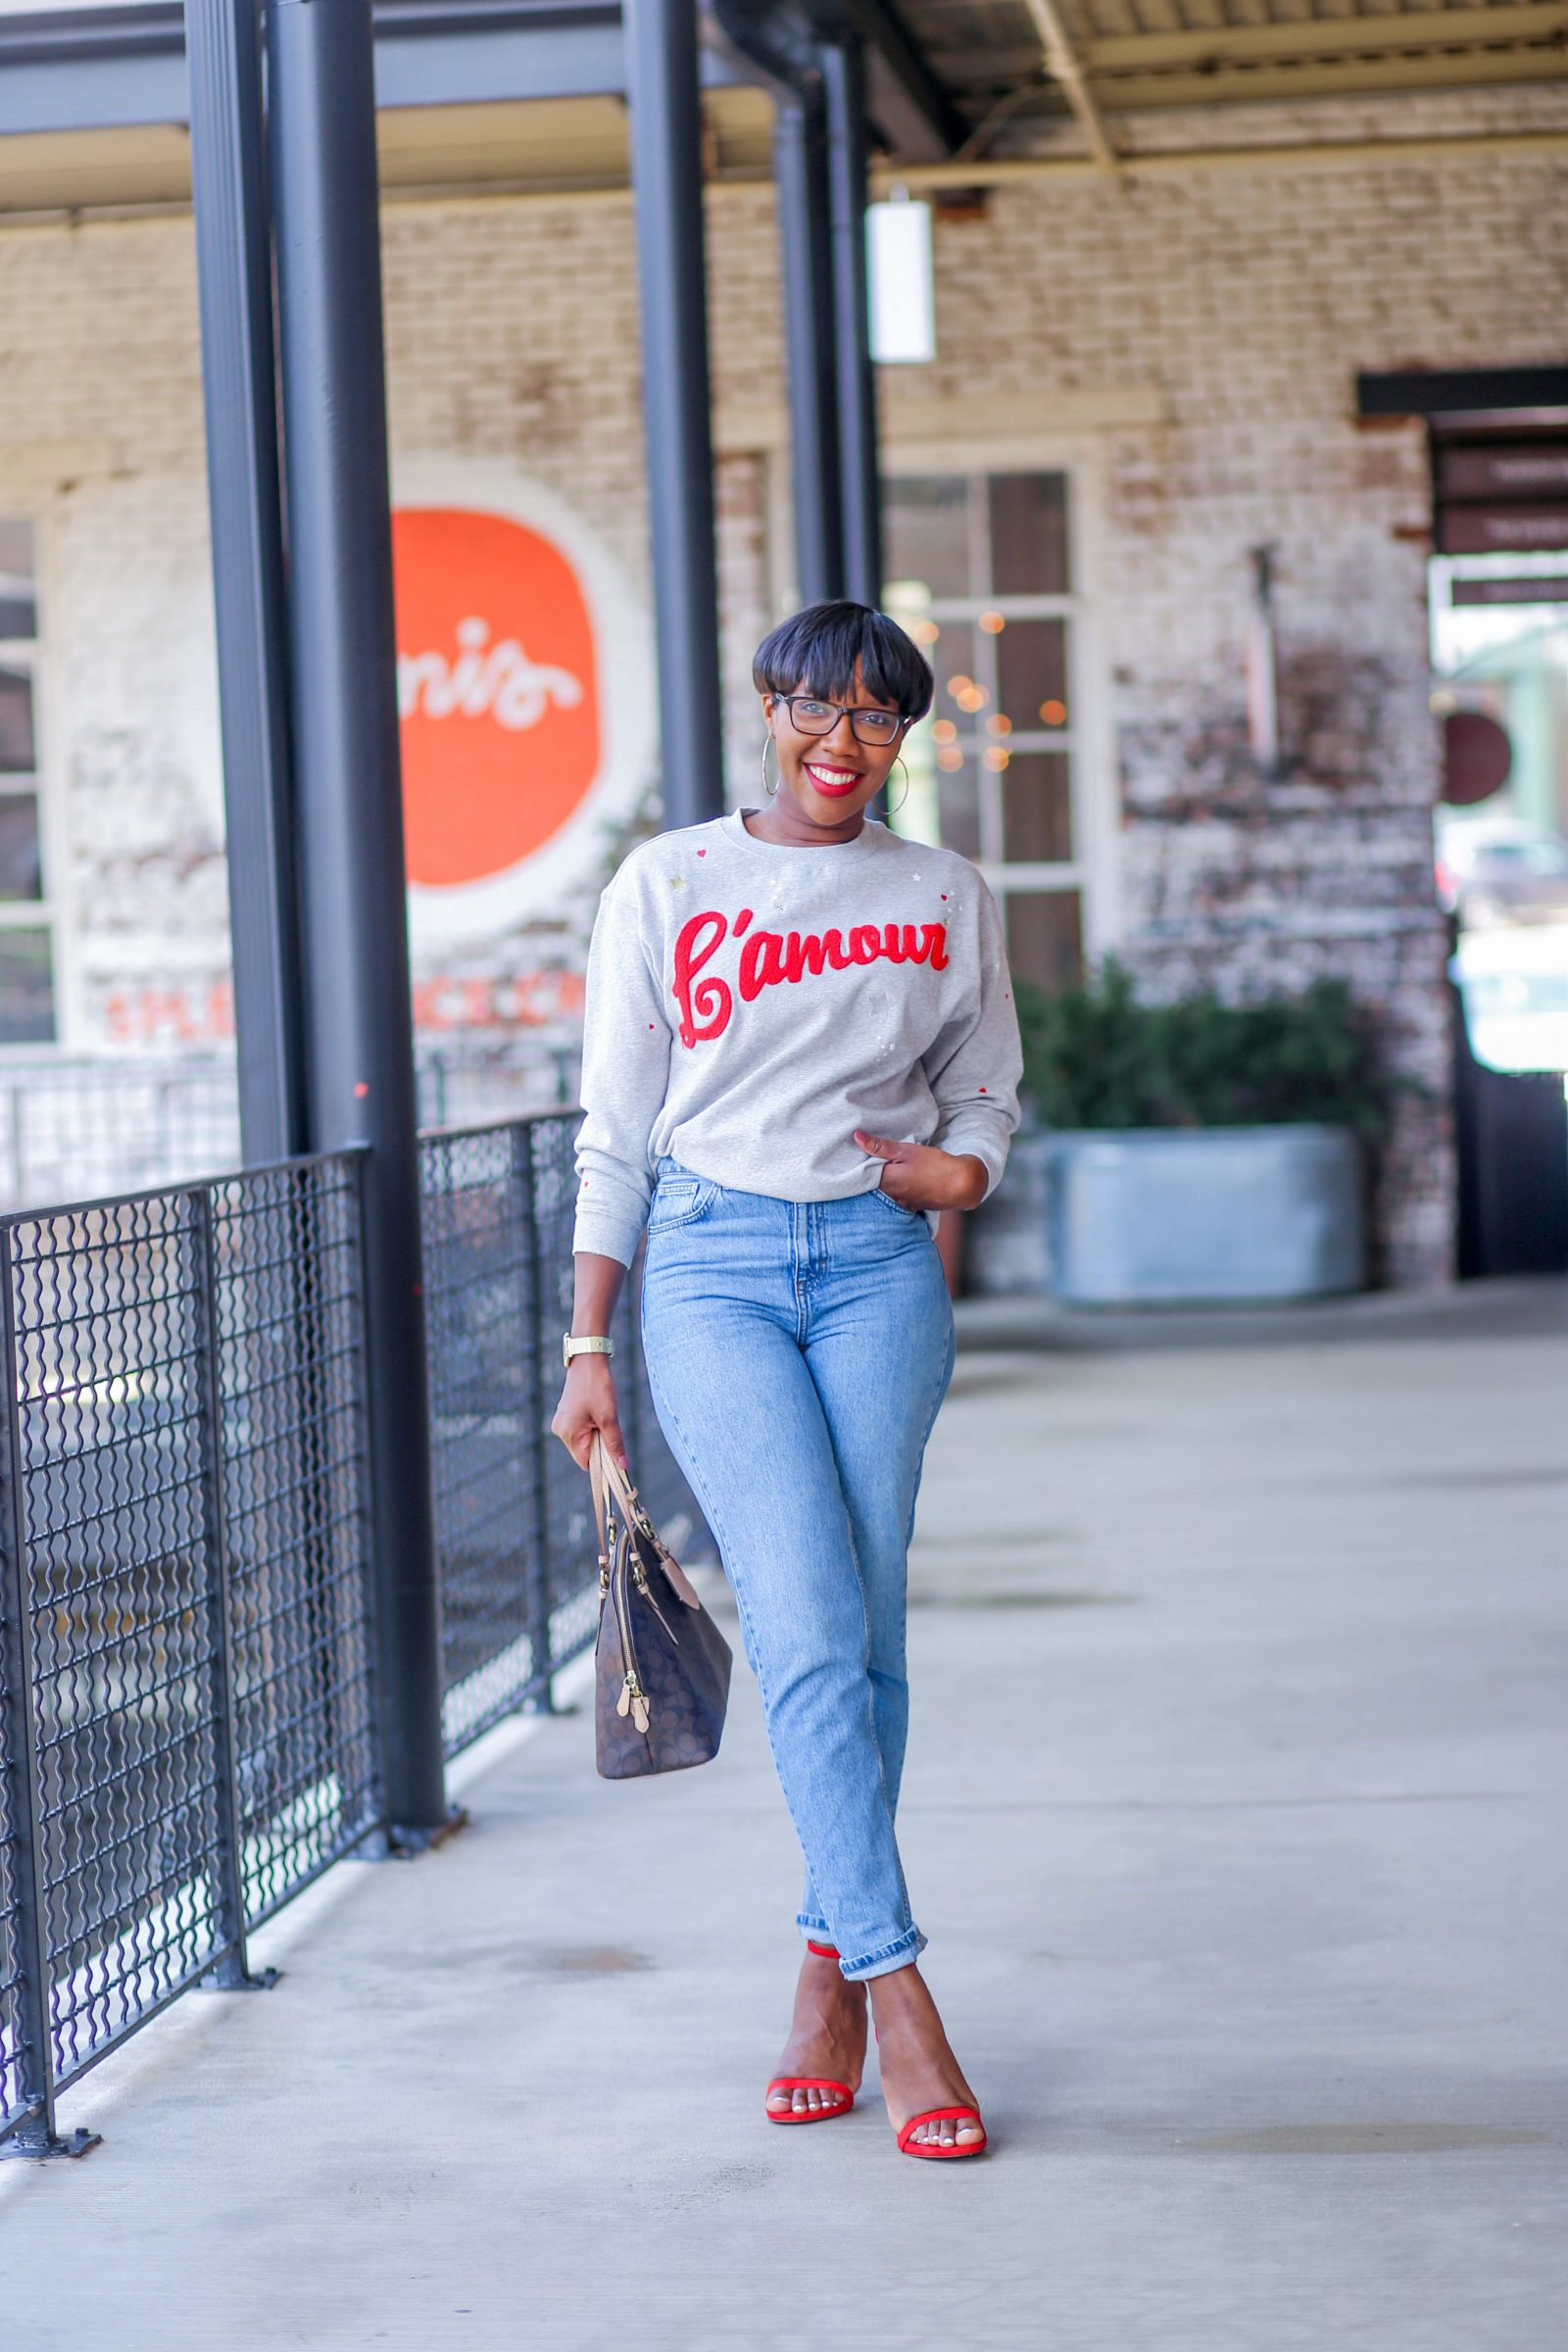 How to Create an Excellent Personal Style Uniform